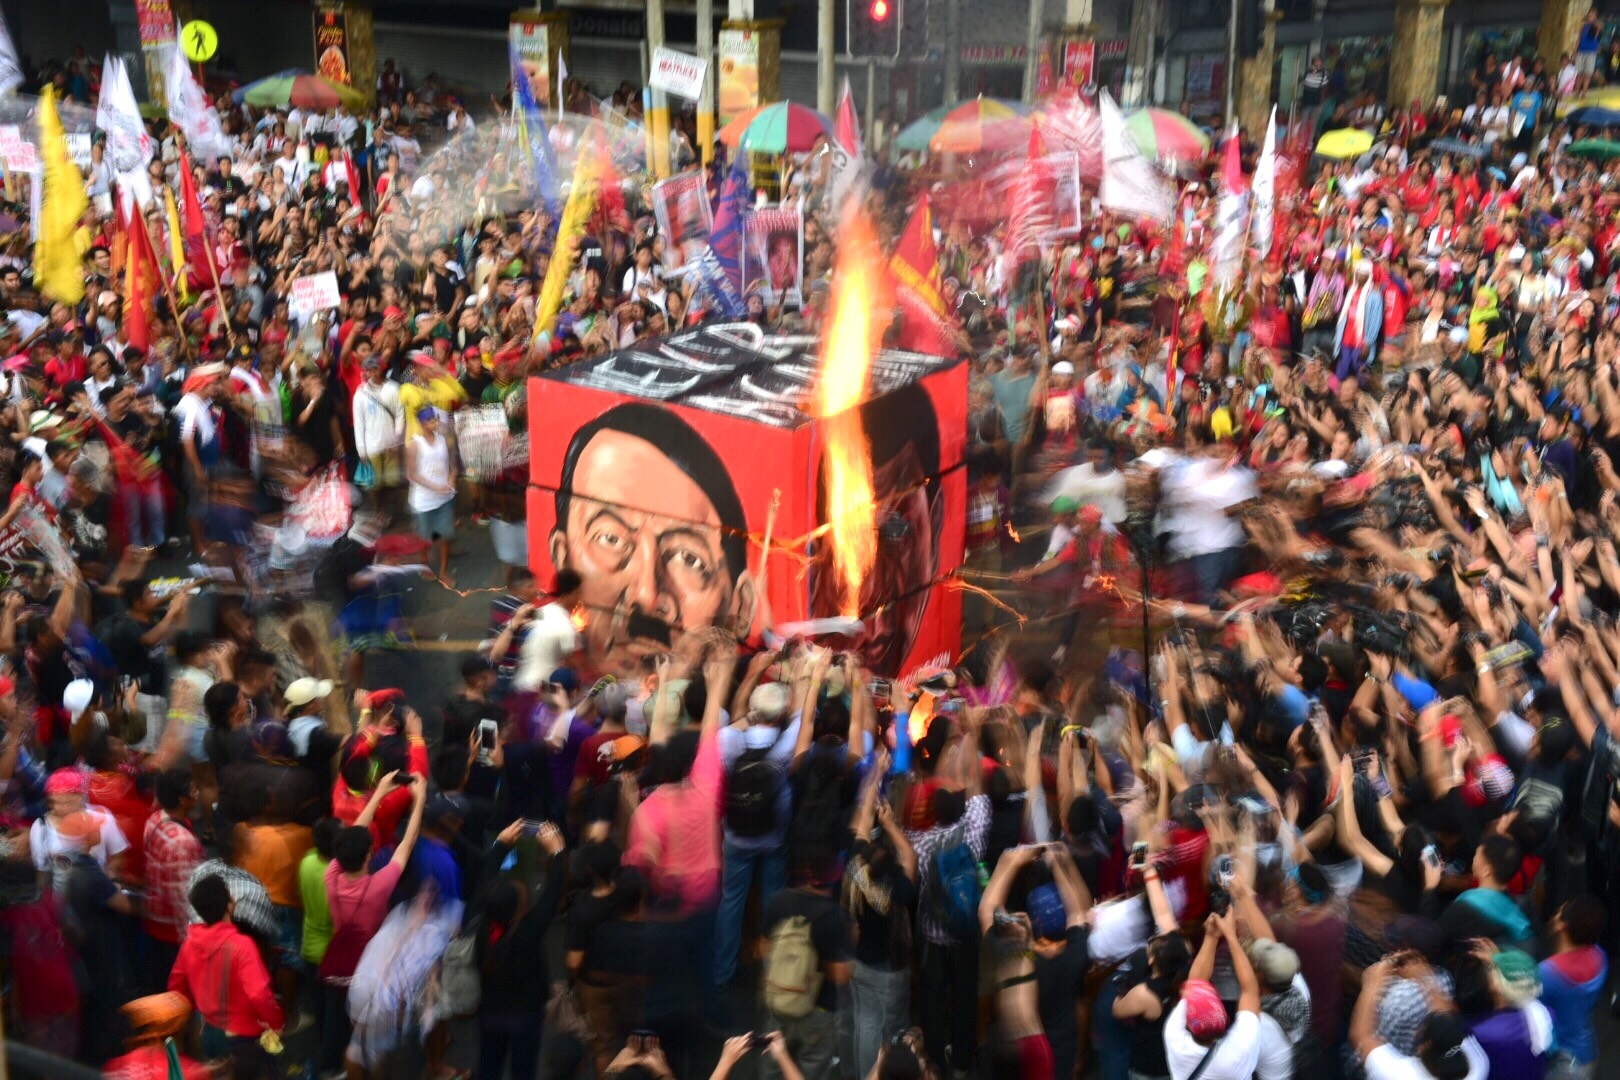 """MULTI-FACETED. An effigy showing the face of President Rodrigo Duterte called """"Rudy's cube"""" was being burned at Mendiola on the 45th anniversary of the declaration of Martial Law. Photo by Alecs Ongcal/Rappler"""